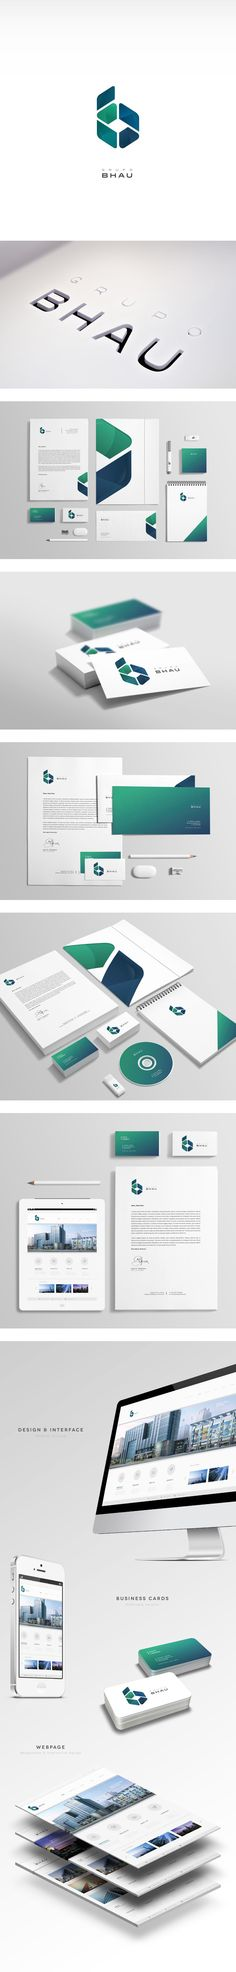 Grupo BHAU by Diego Leyva, via Behance. Implemento de Imagen de marca